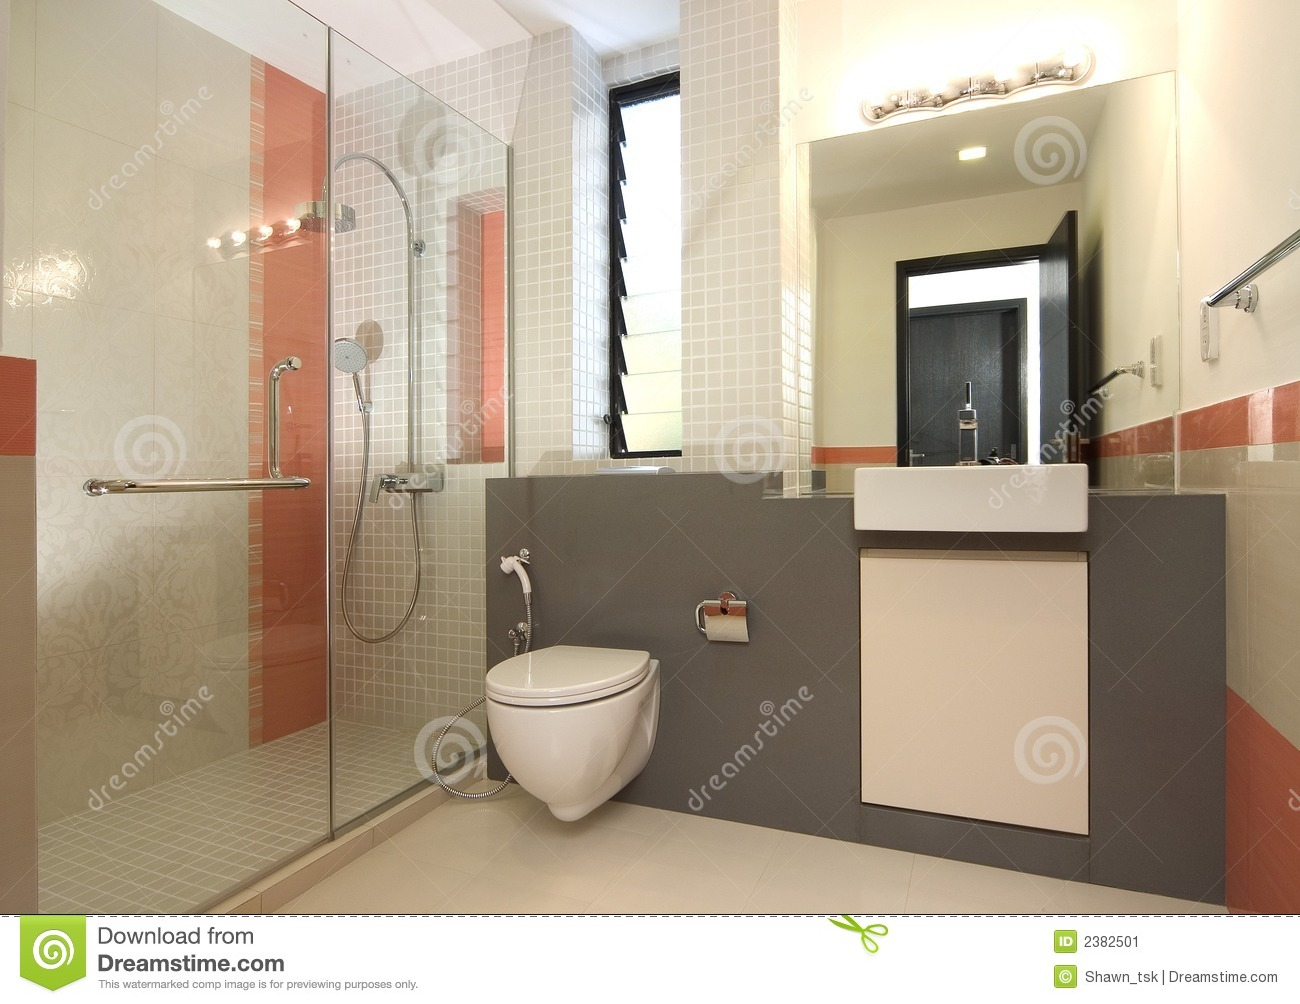 Interior design bathroom stock image image of light for Interior design bathroom images